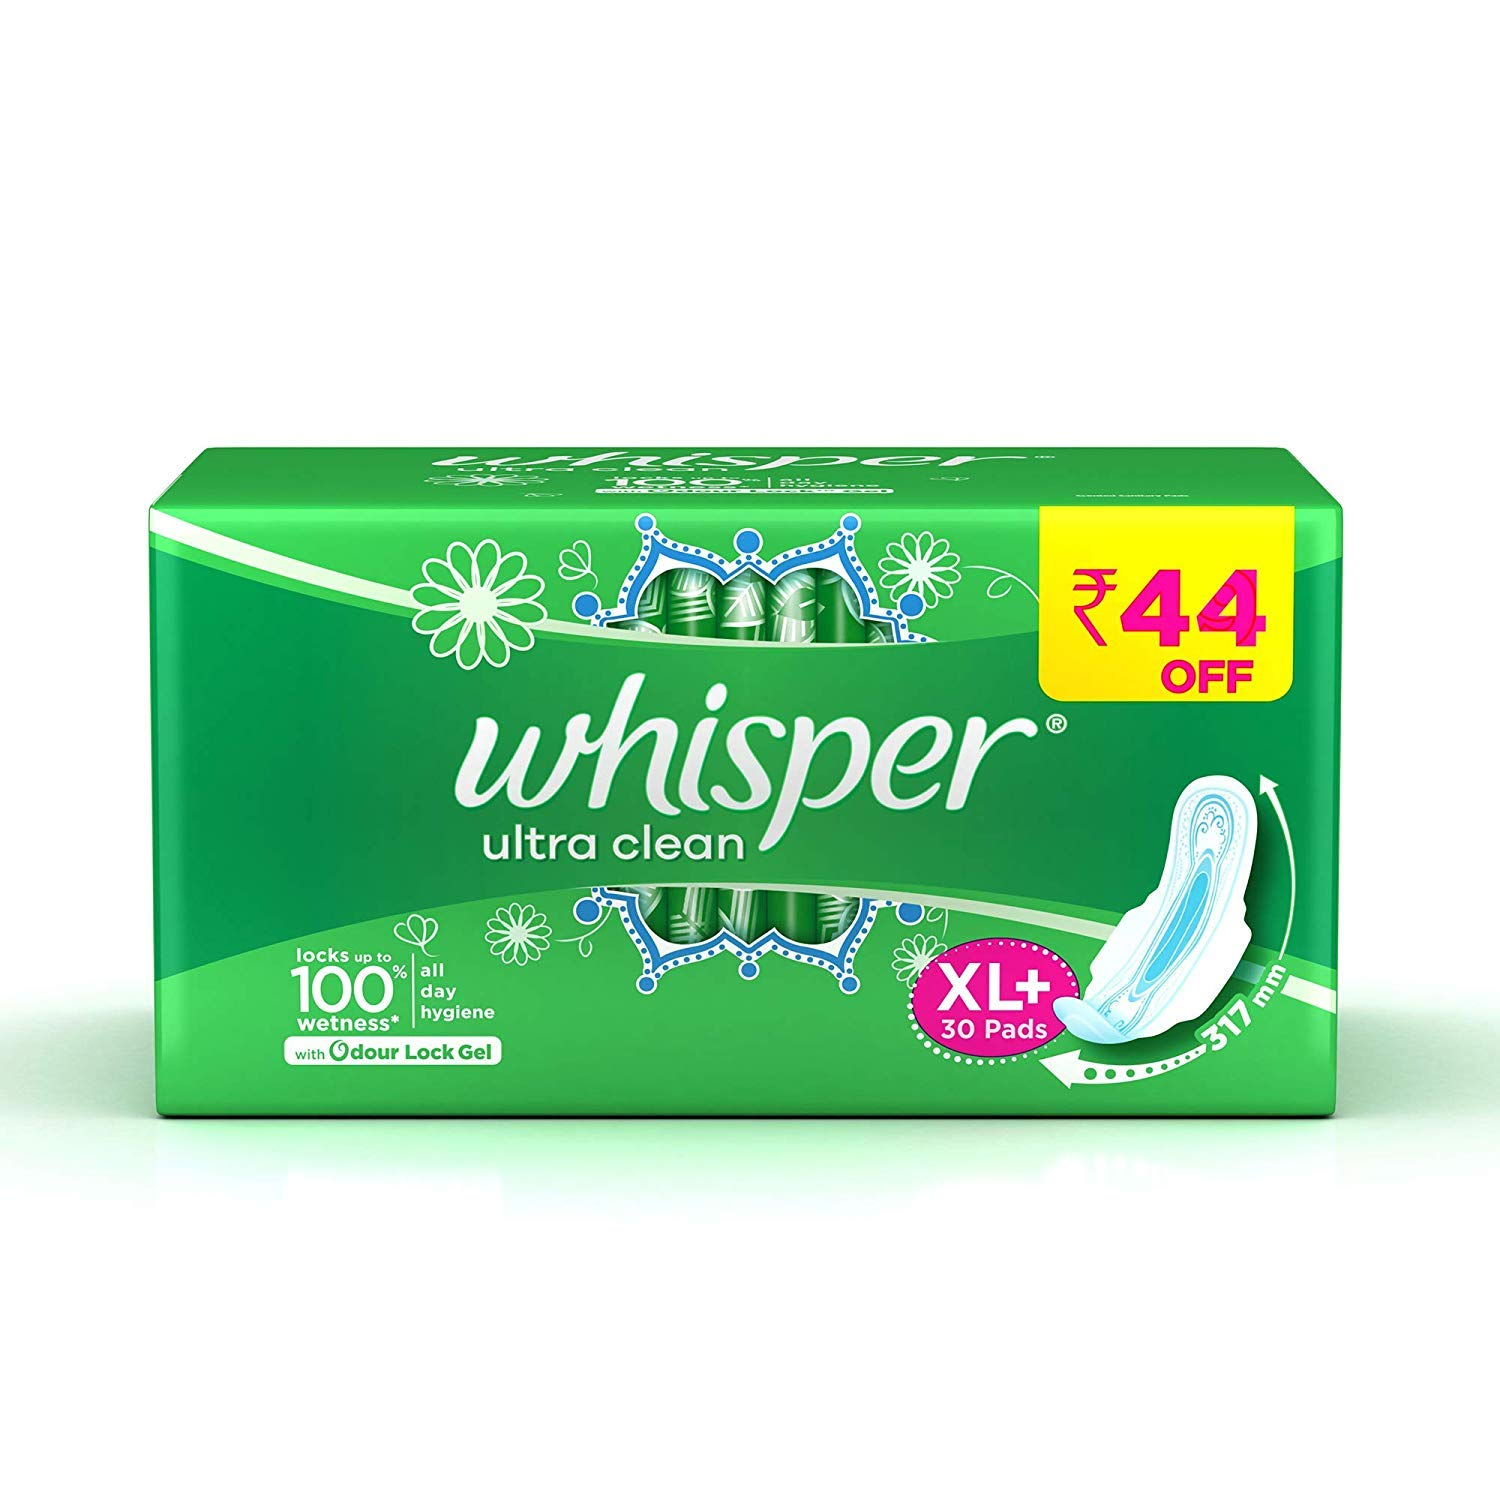 Whisper Ultra Clean Sanitary Pads - 30 Pieces (XL Plus) product image